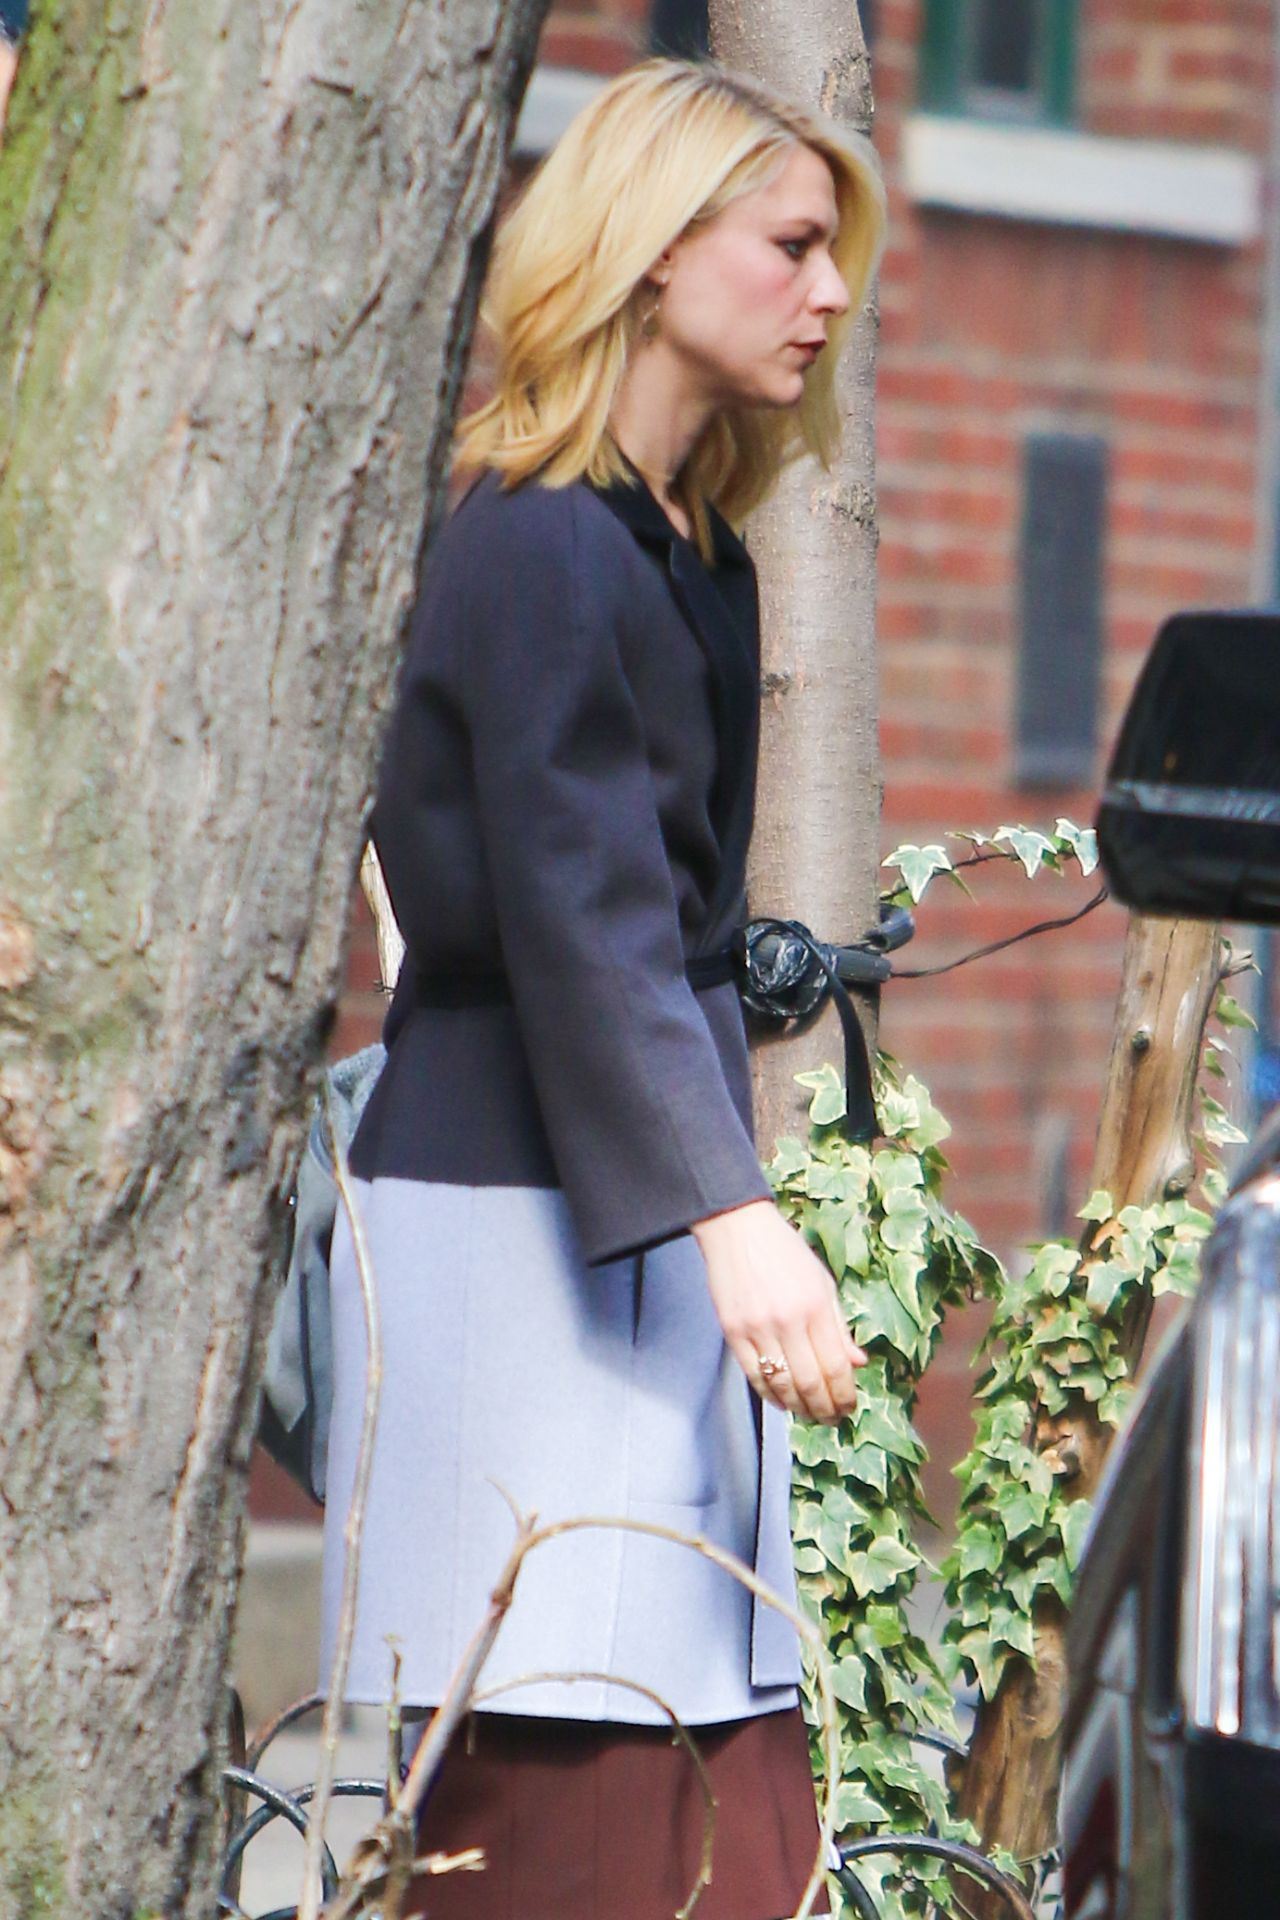 Claire Danes Heads Over To Jimmy Fallon From Her Nyc Apartment 3 28 2017